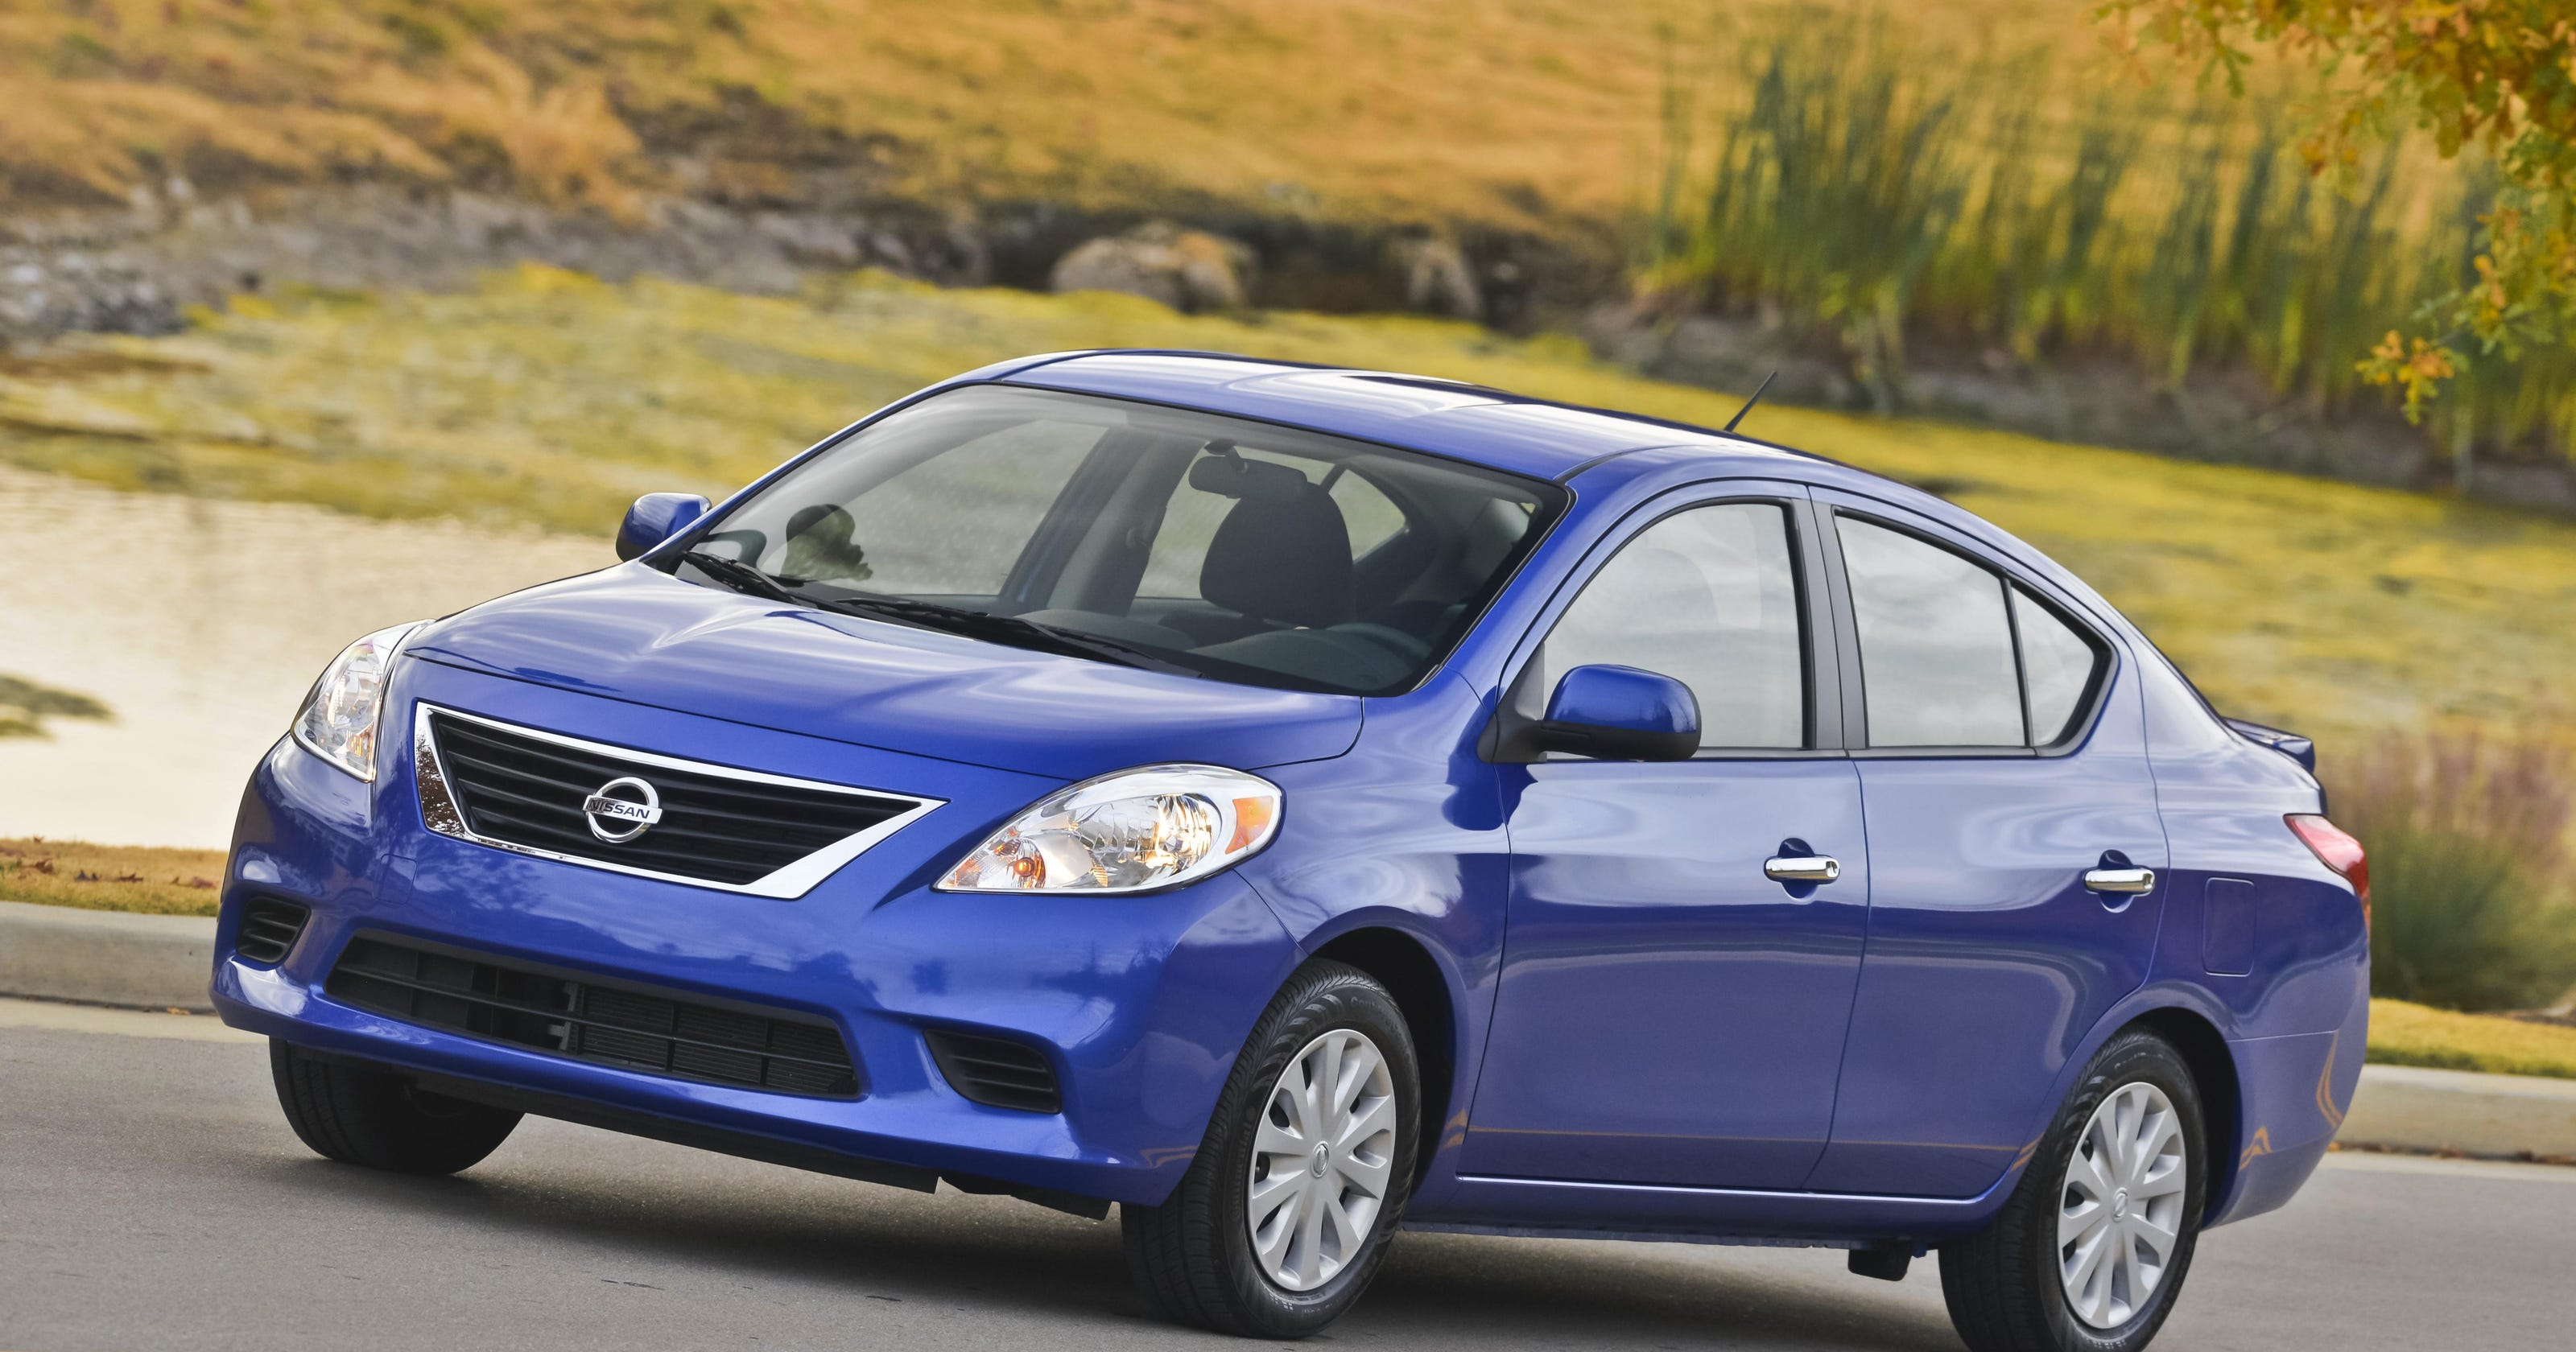 Nissan recalls 300,000 cars for acceleration concerns